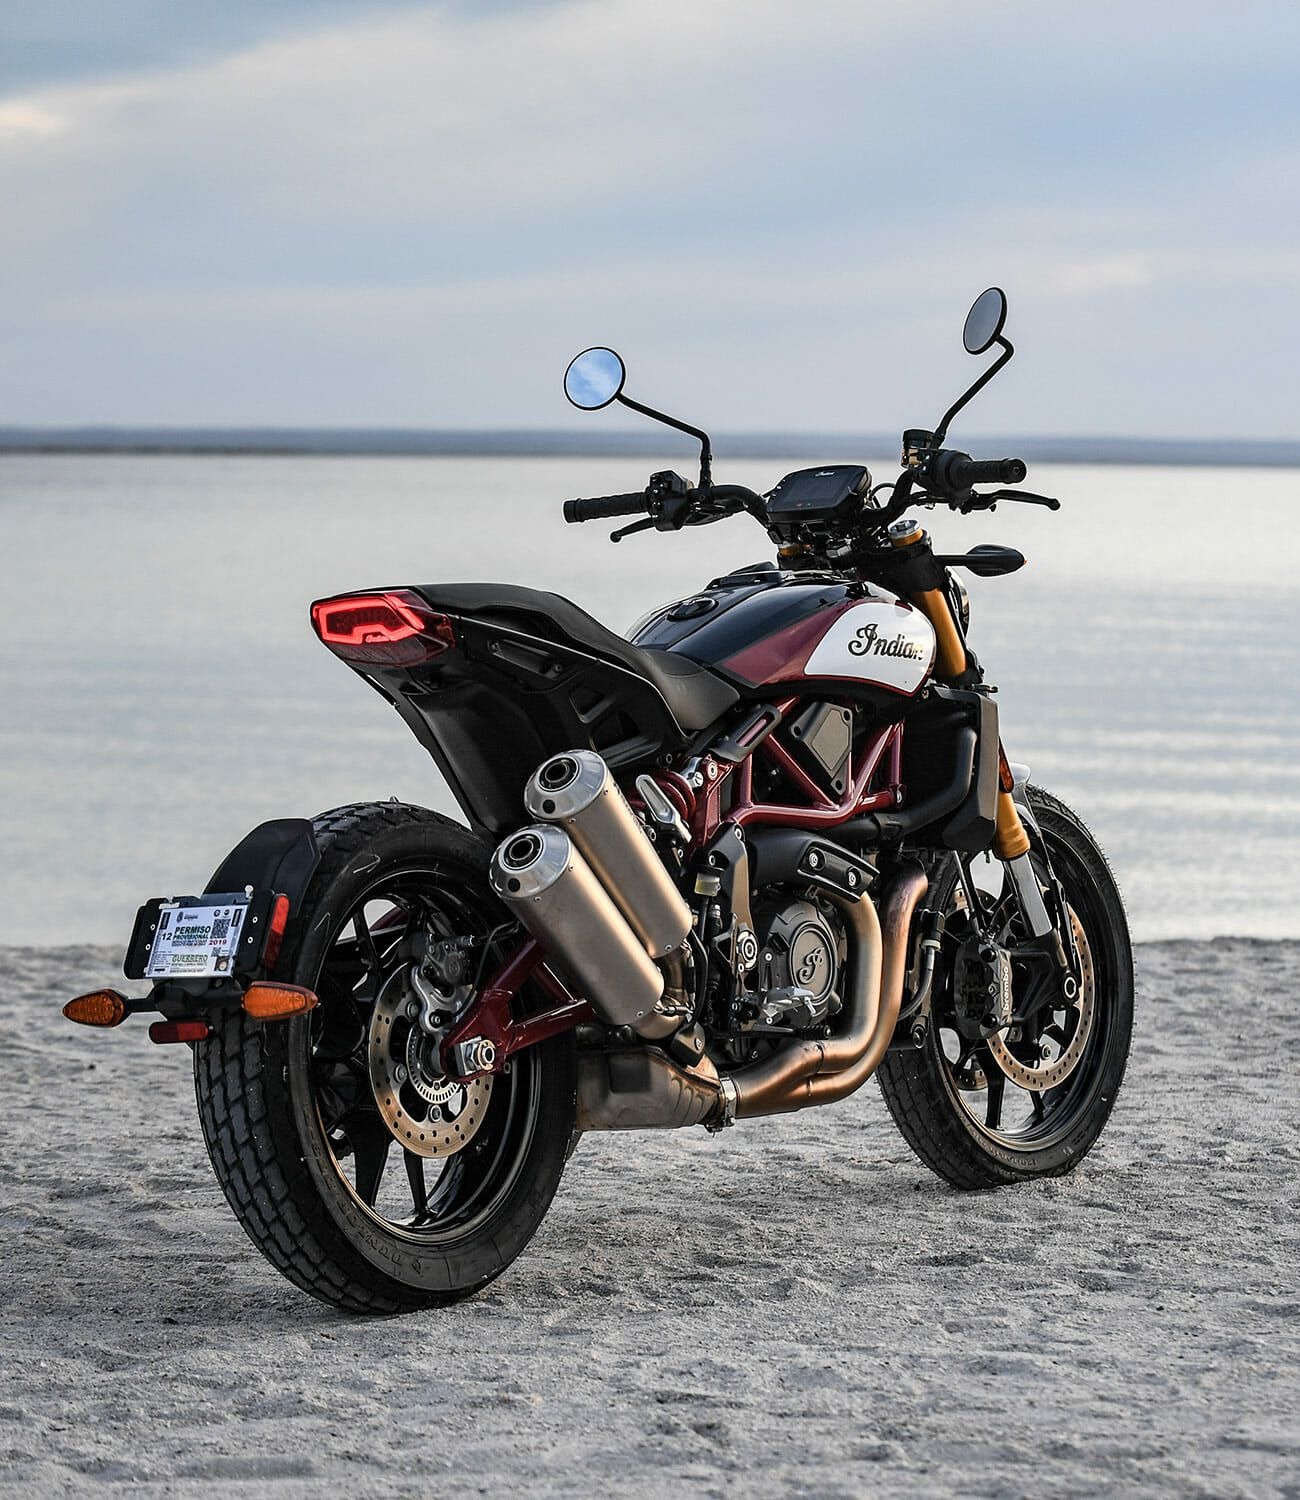 Indian Ftr 1200 >> 2019 Indian Ftr 1200 Review Out With The Old In With The